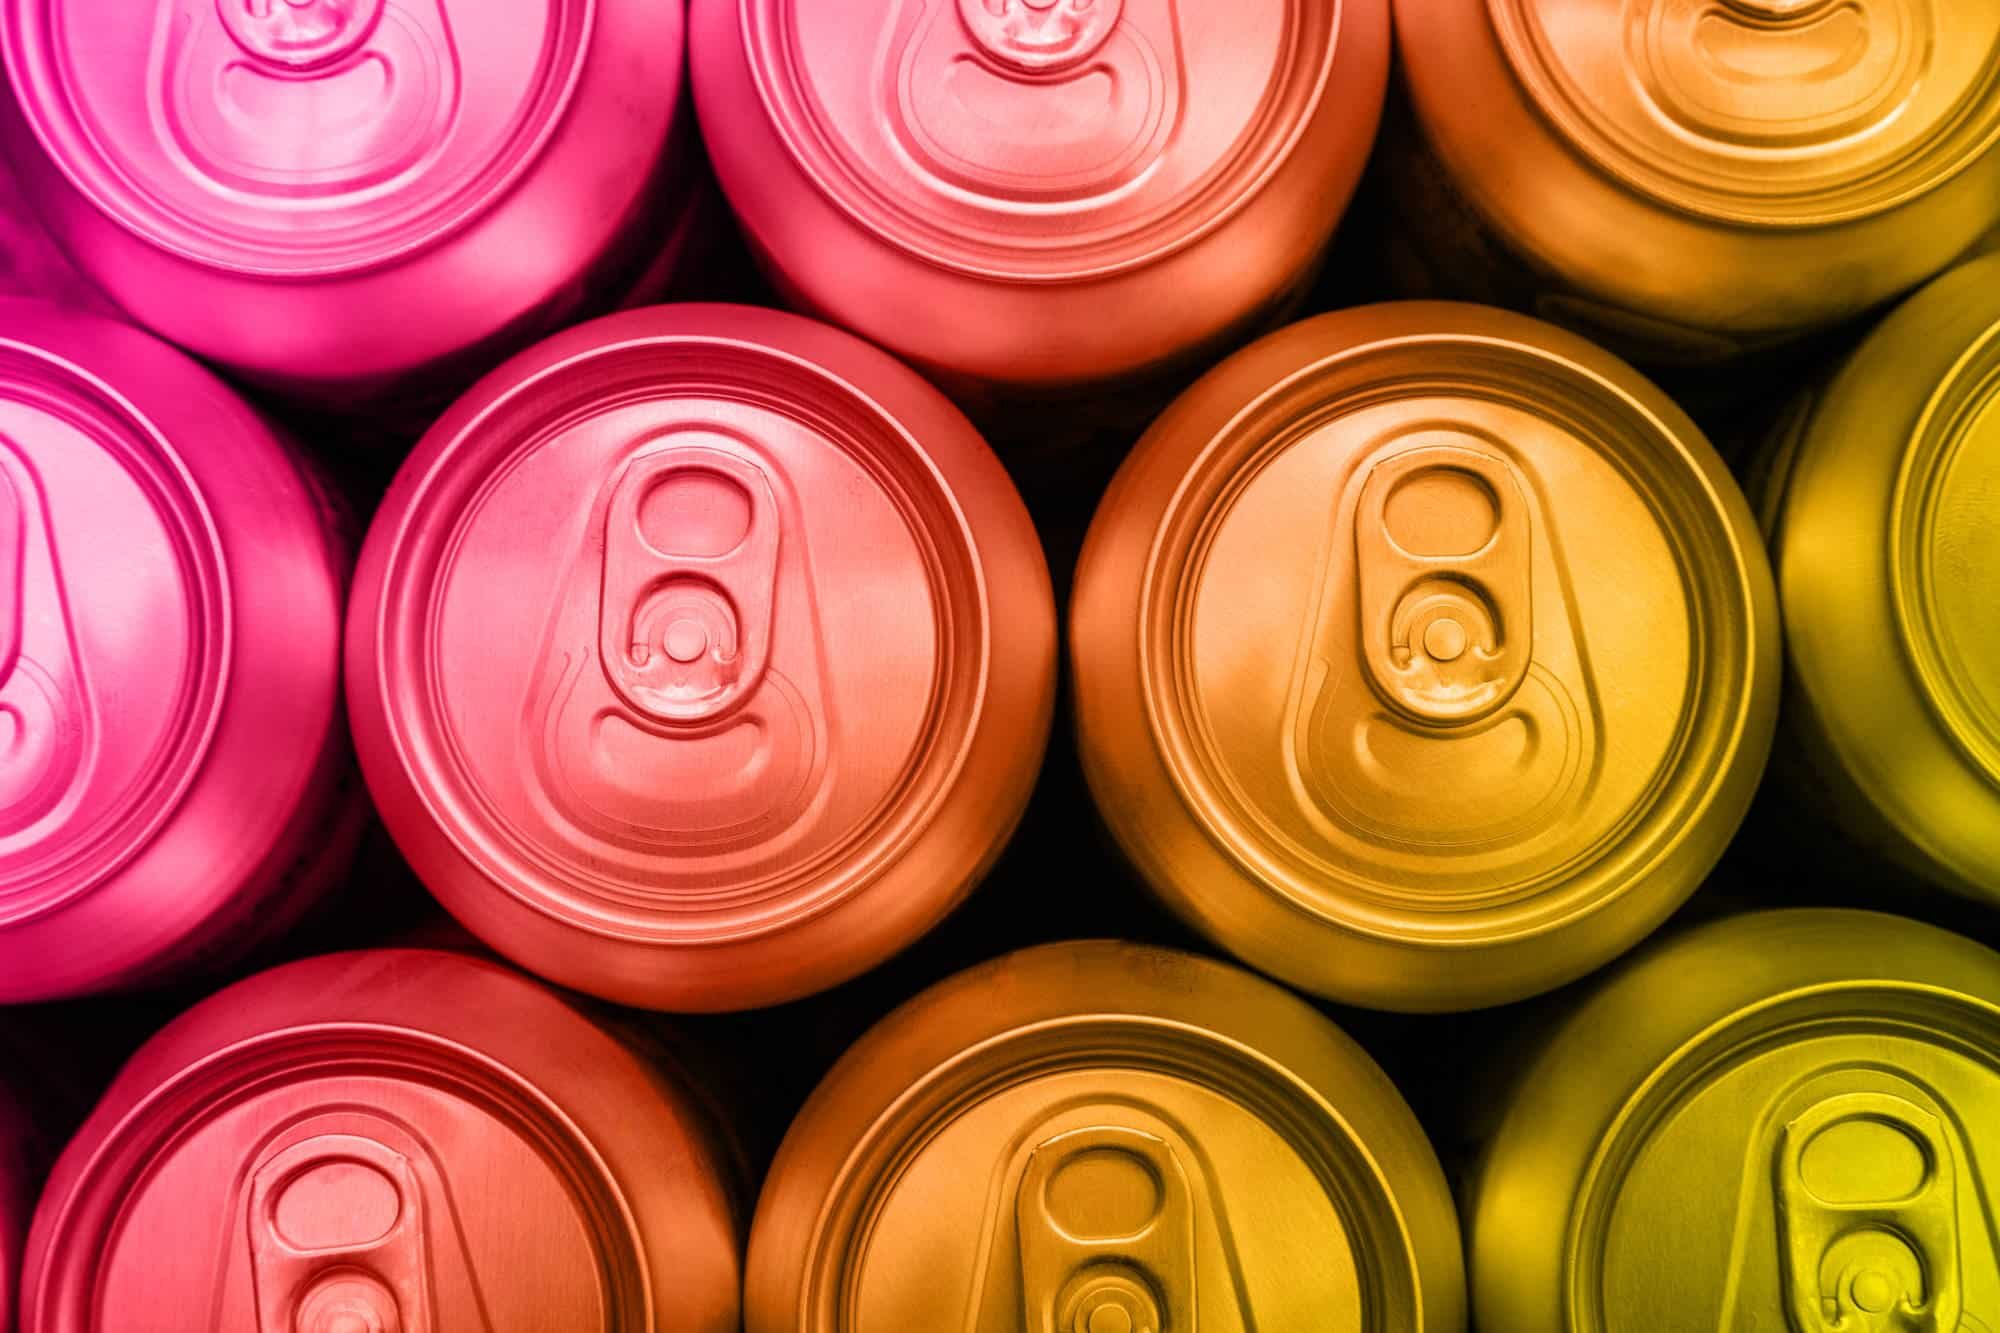 Best Energy Drinks – top 15 rated from best to worst